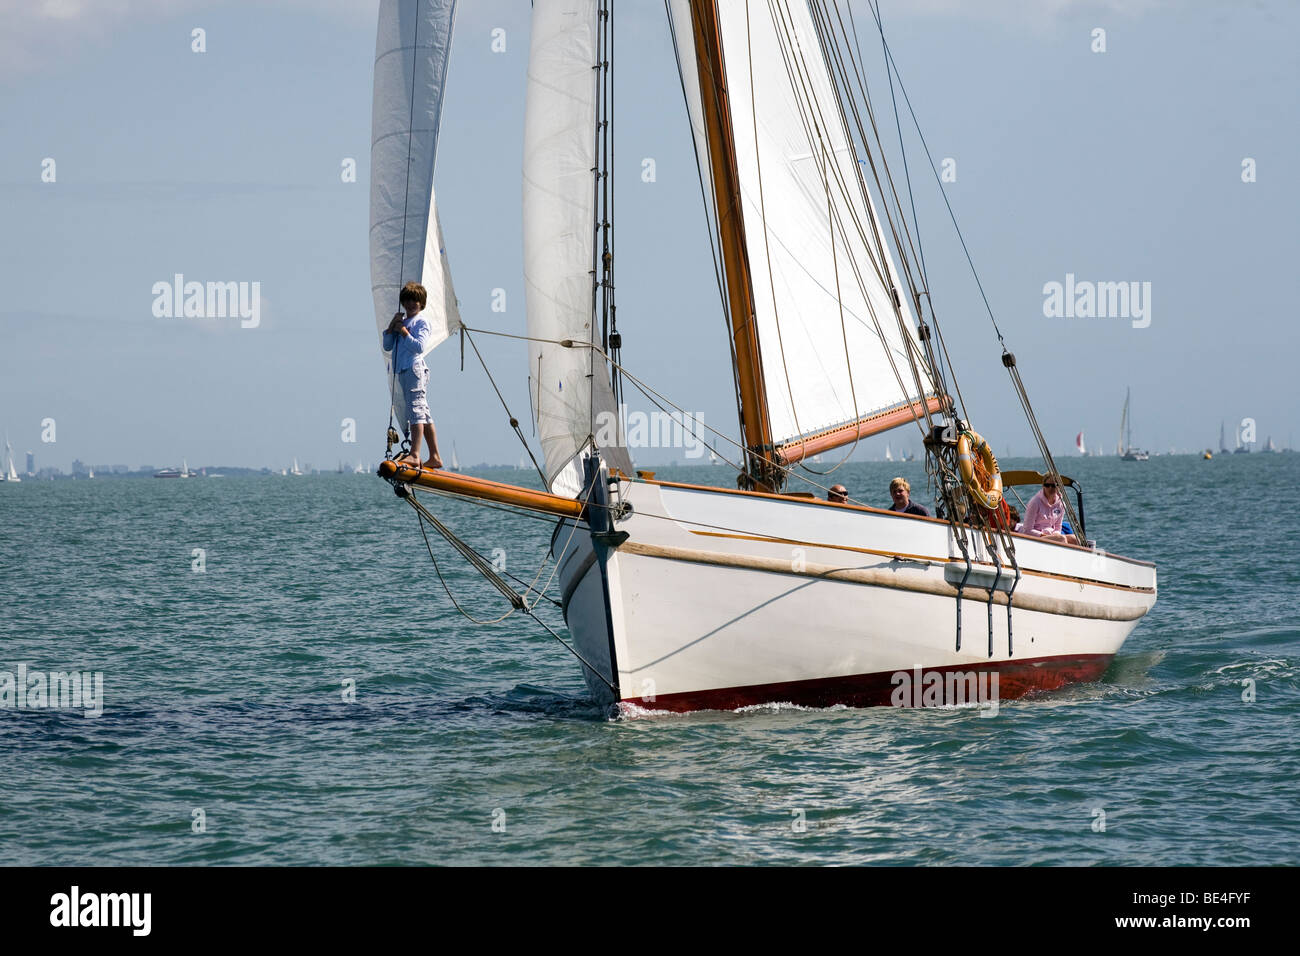 Bristol Pilot Cutter Polly Agatha Sail gaff rig bowsprit fast tough channel sailing Solent Charter holiday 1904 - Stock Image